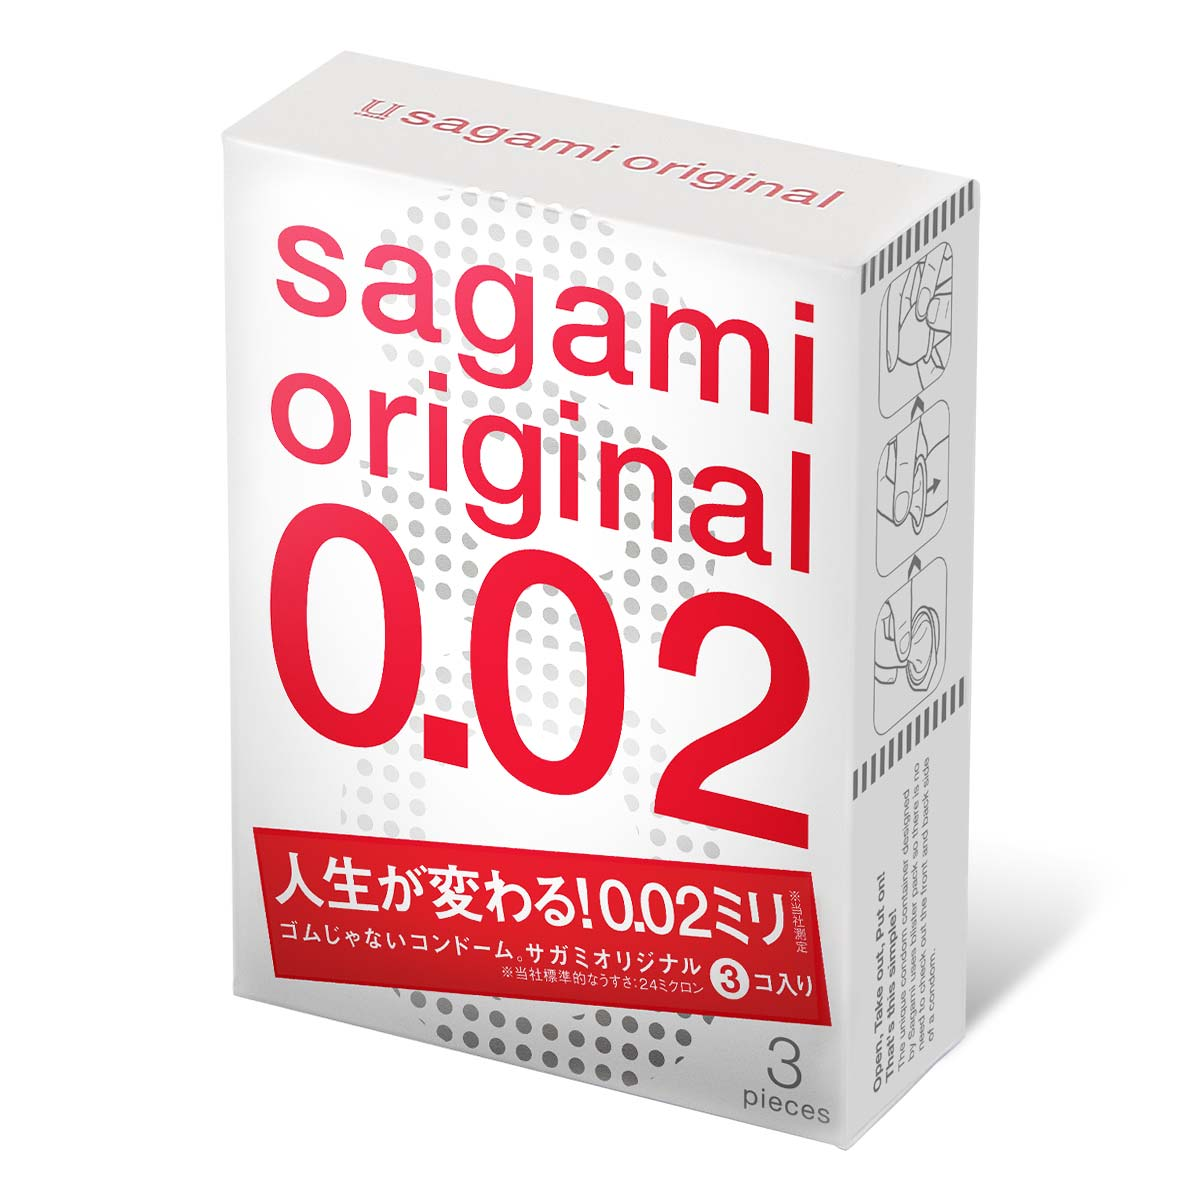 Sagami Original 0.02 (2nd generation) 3's Pack PU Condom